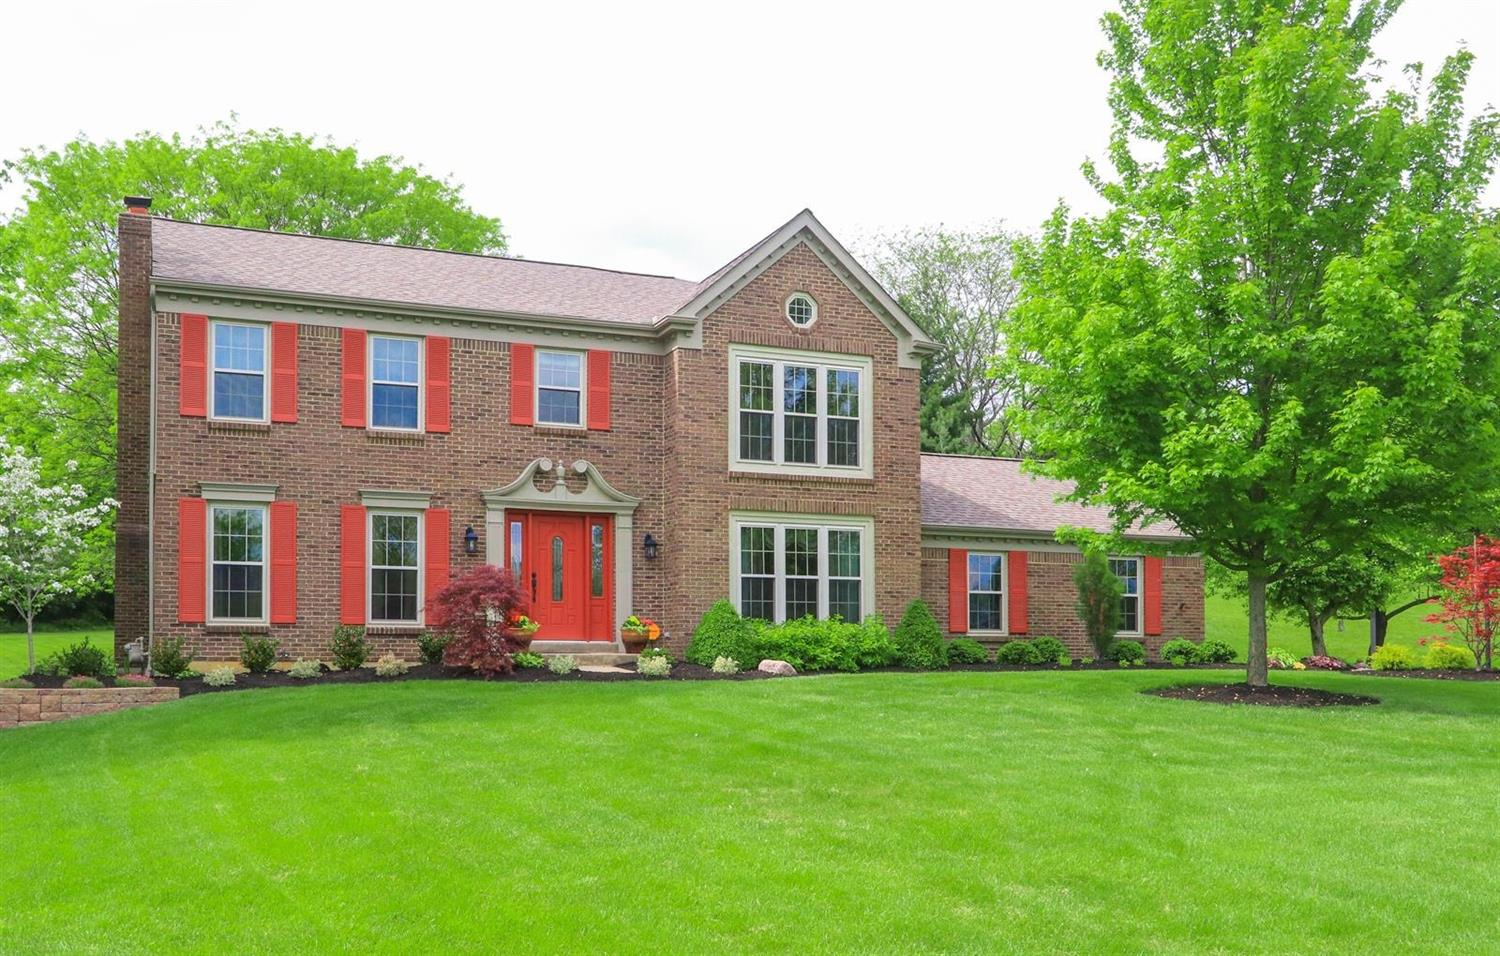 Property for sale at 9913 Bolingbroke Drive, West Chester,  Ohio 45241